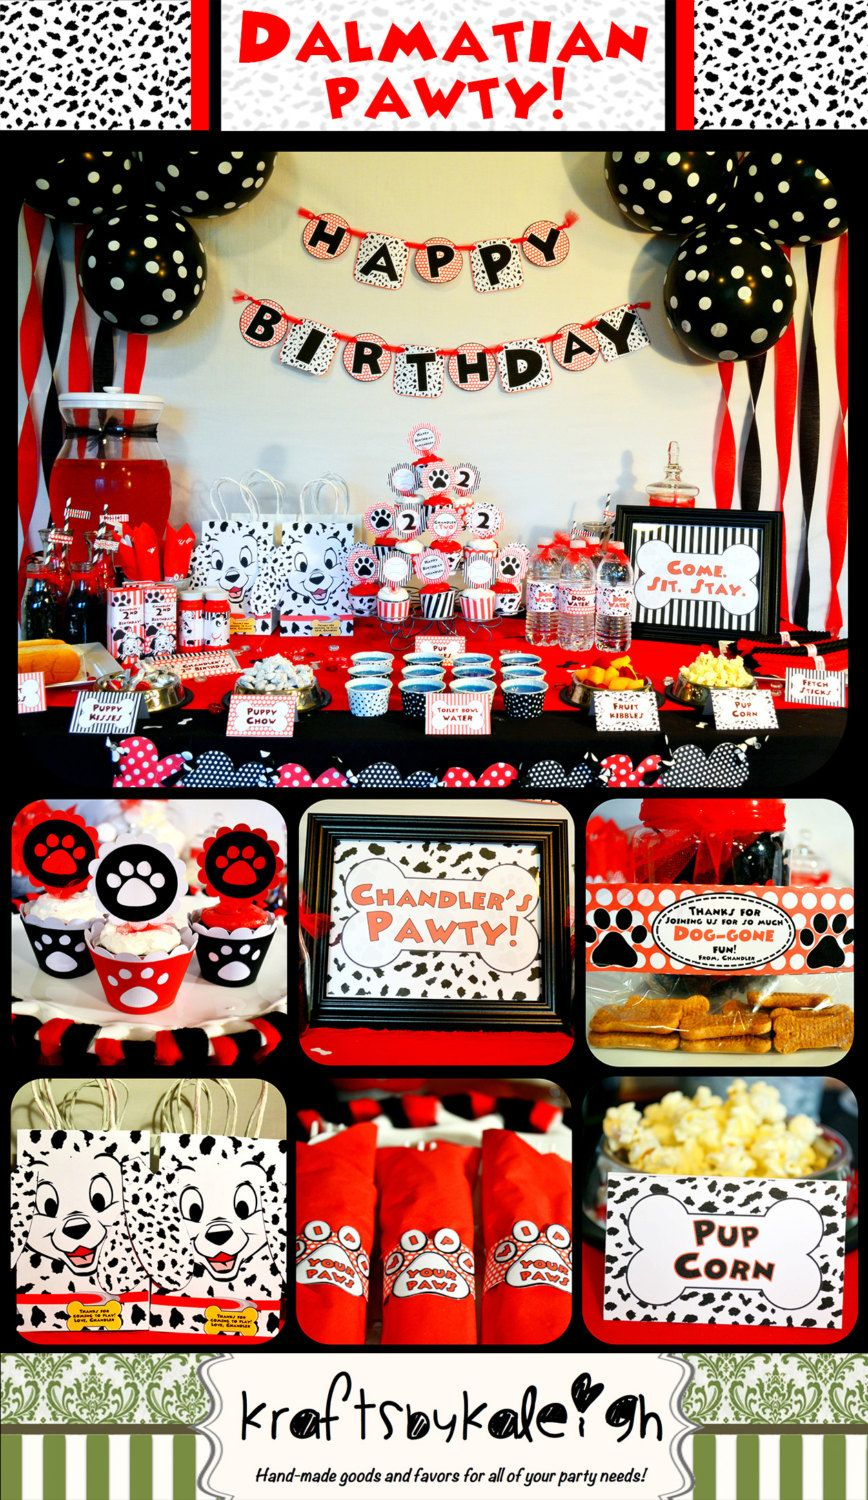 Disney 101 Dalmatian Birthday Party Package By Kraftsbykaleigh Dalmatian Party Fun Birthday Party 101 Dalmations Party